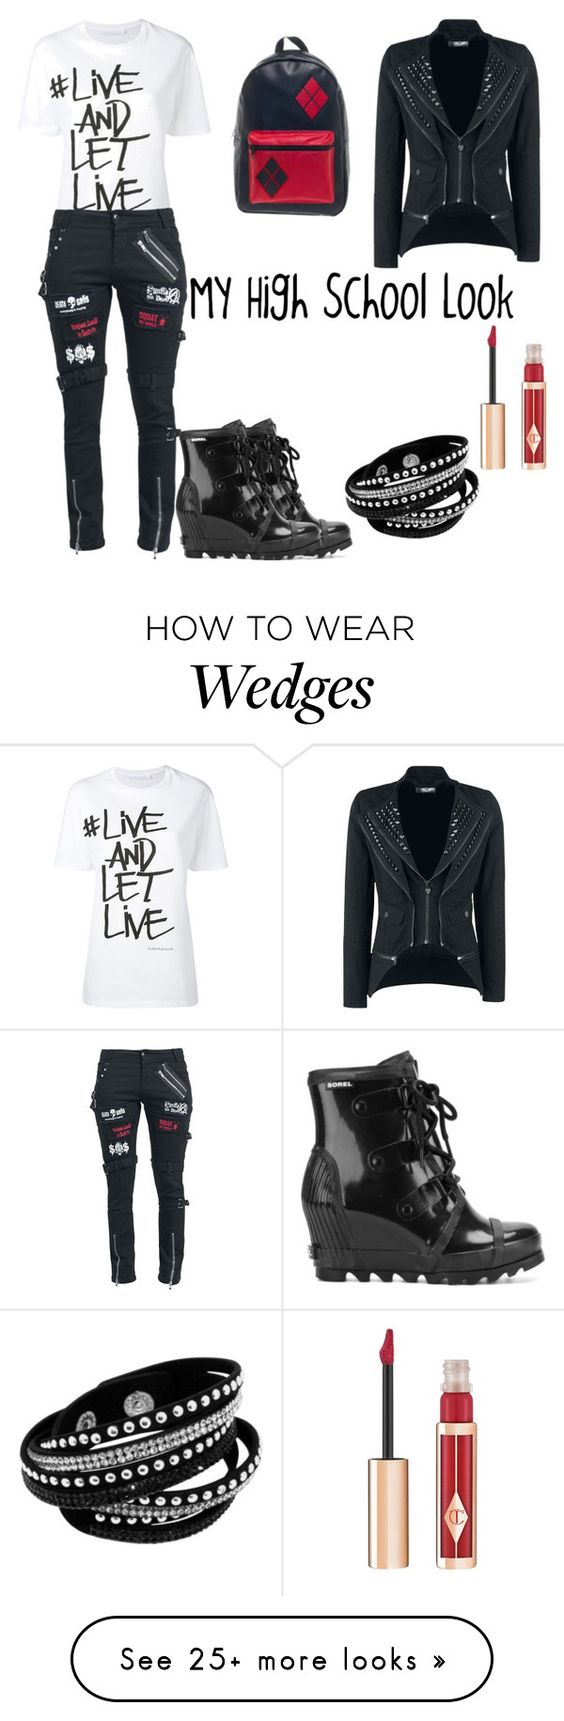 """High School look"" by freefreak on Polyvore featuring Neil Barrett, SOREL and Charlotte Tilbury"